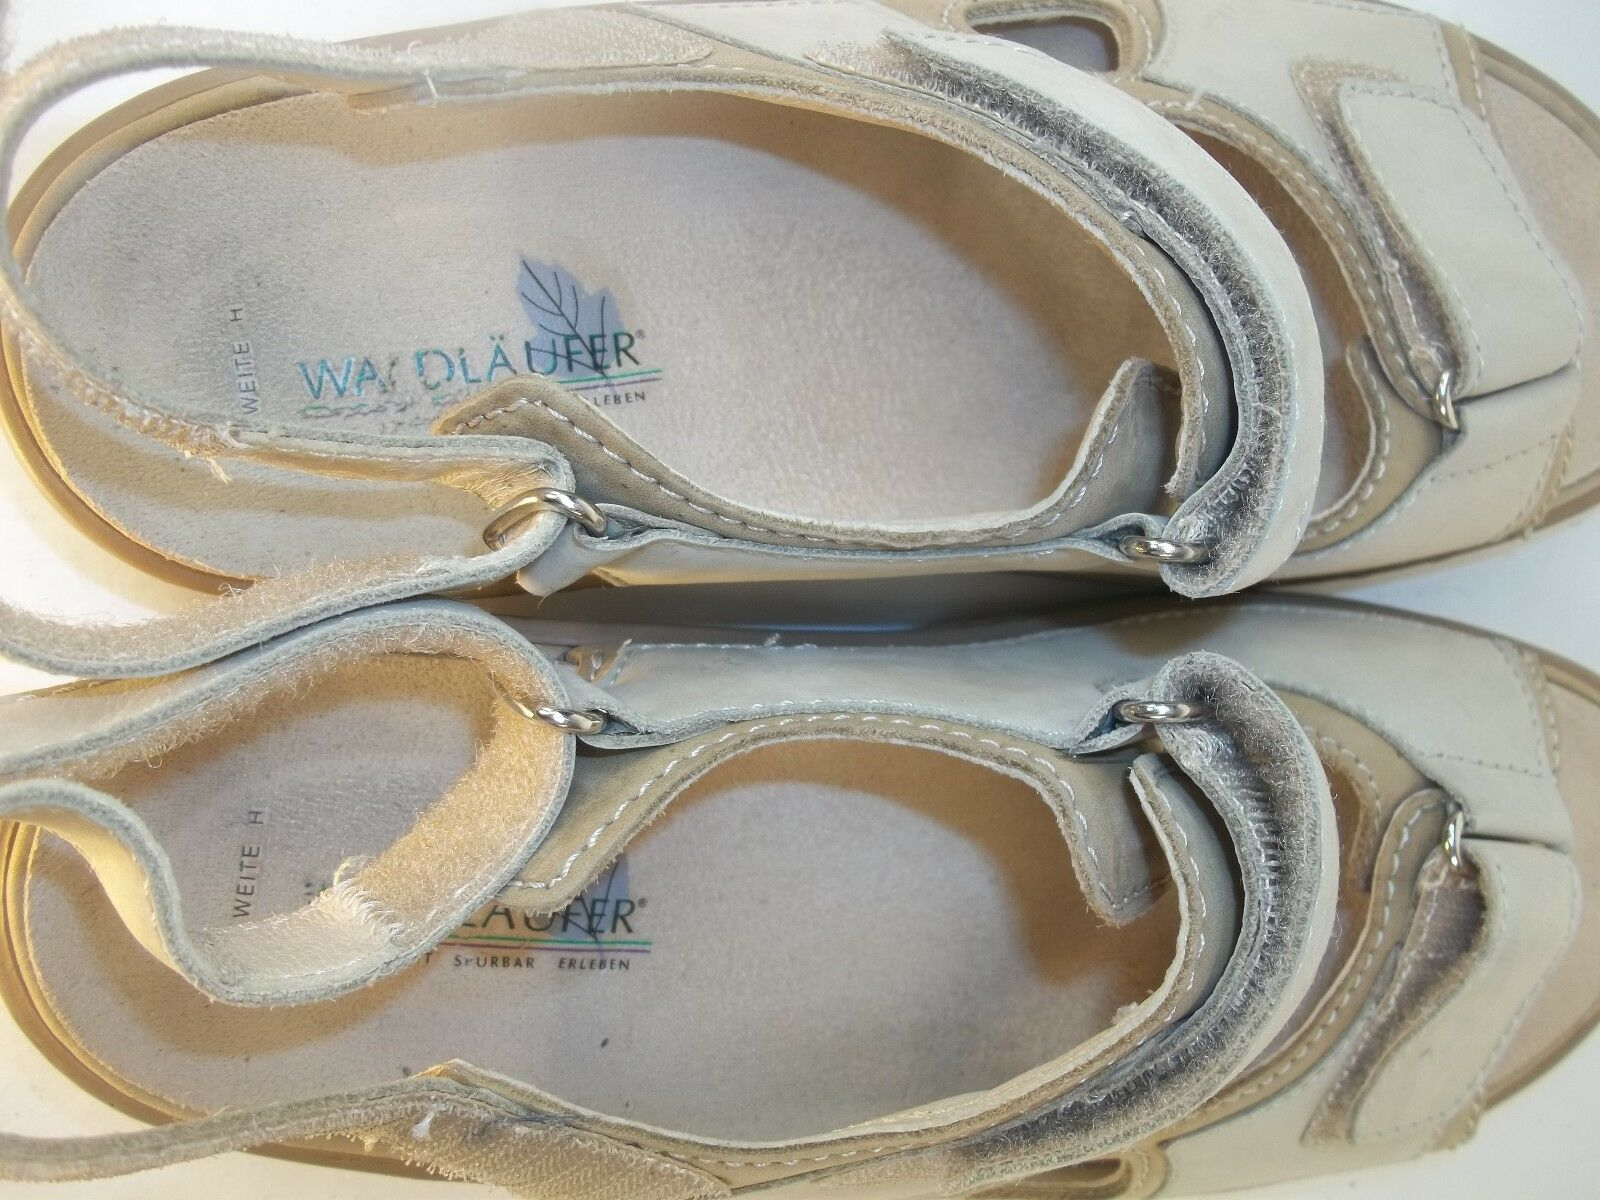 Waldlaufer Wos scarpe Sandals US 6 Beige Two tone Suede Suede Suede Straps Walking 1026 830a1c